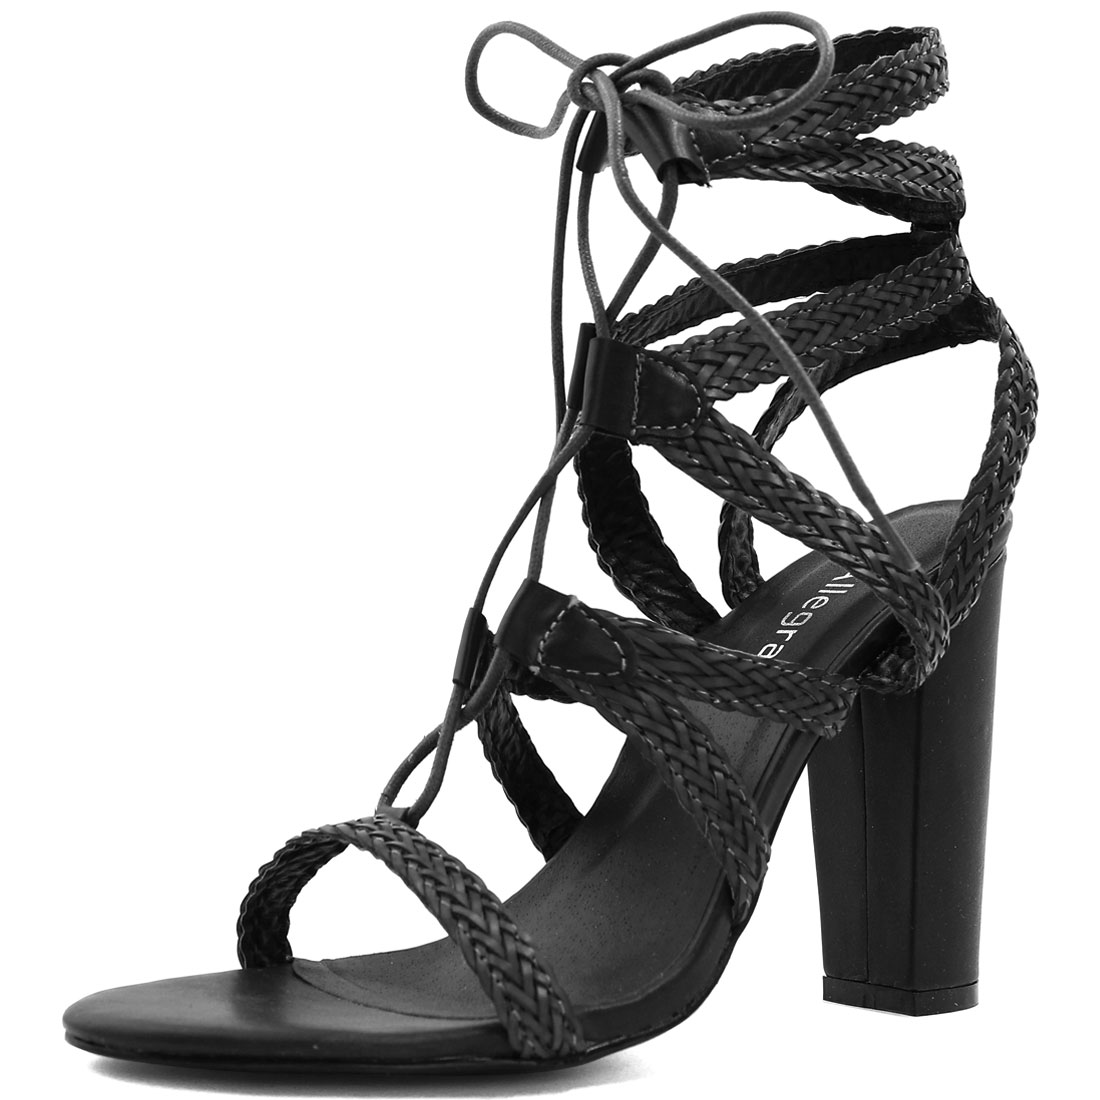 Woman Chunky Heel Braided Strappy Lace-Up Sandals Black US 8